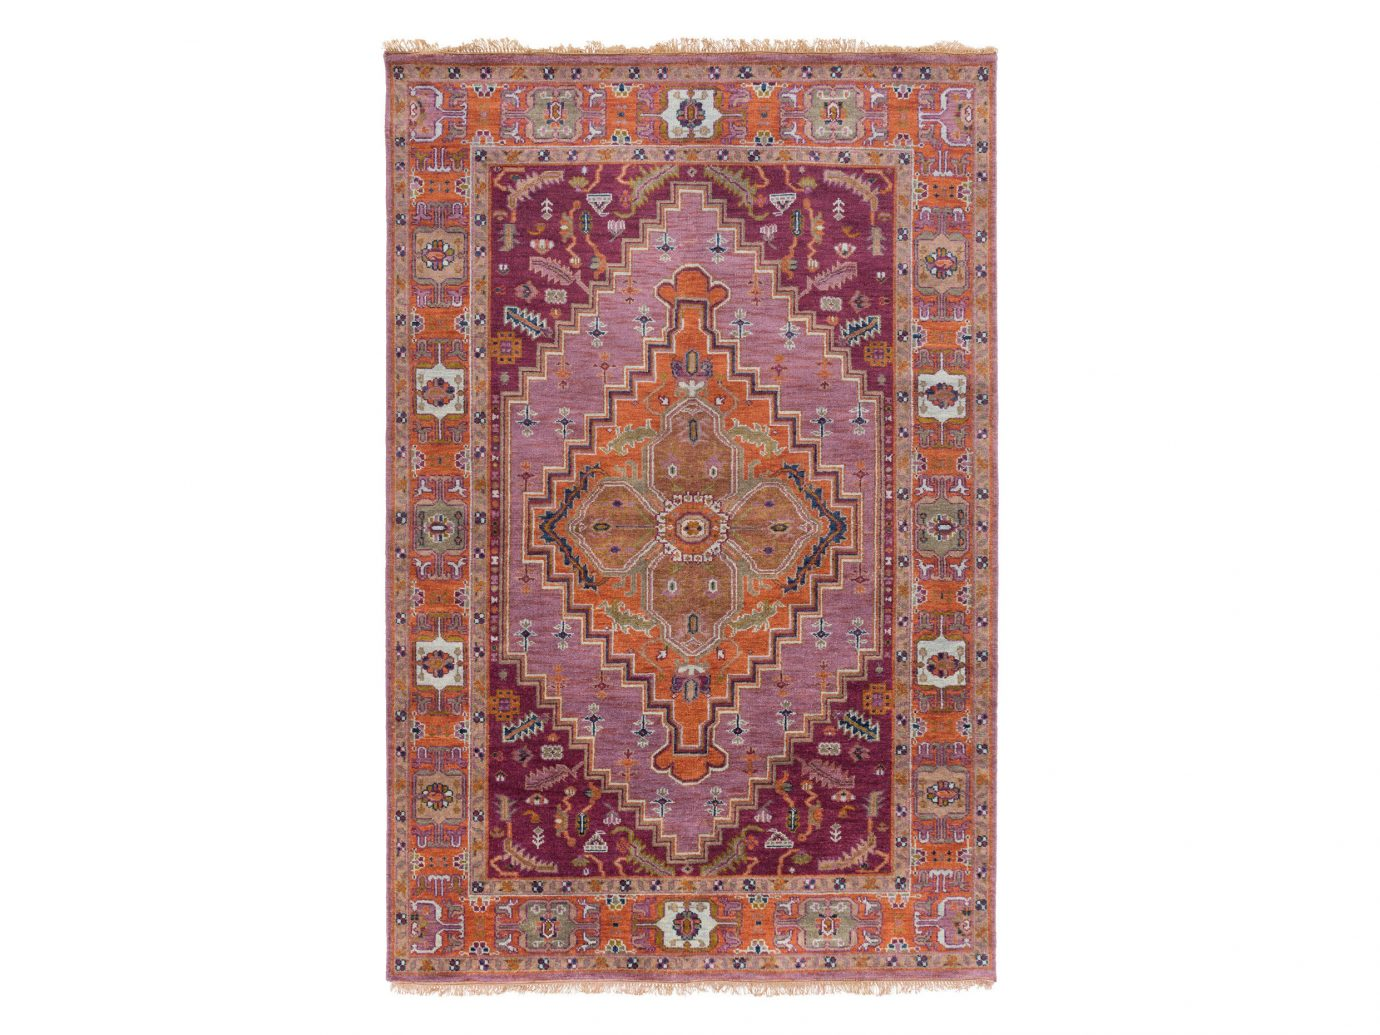 Amsterdam Style + Design The Netherlands Travel Shop furniture rug flooring carpet paisley